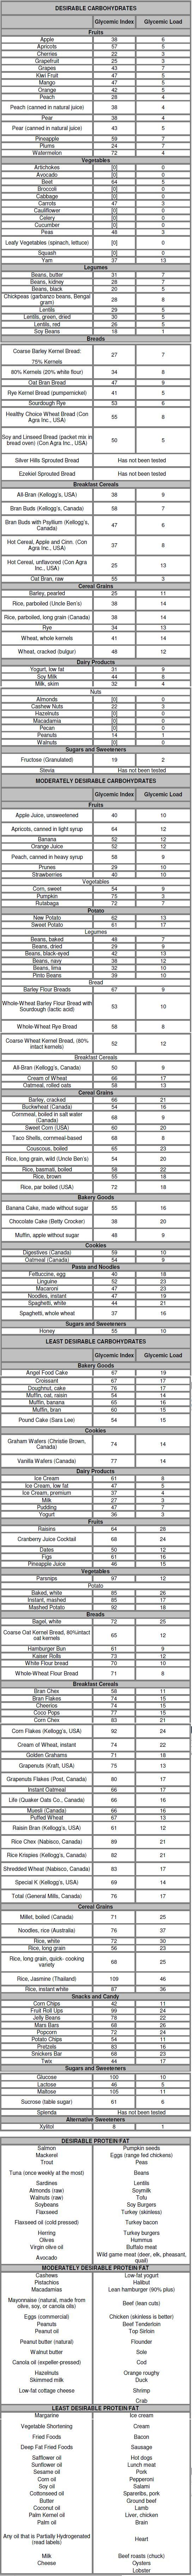 Glycemic Index/Load - Been looking for this to go along with my cross fit class